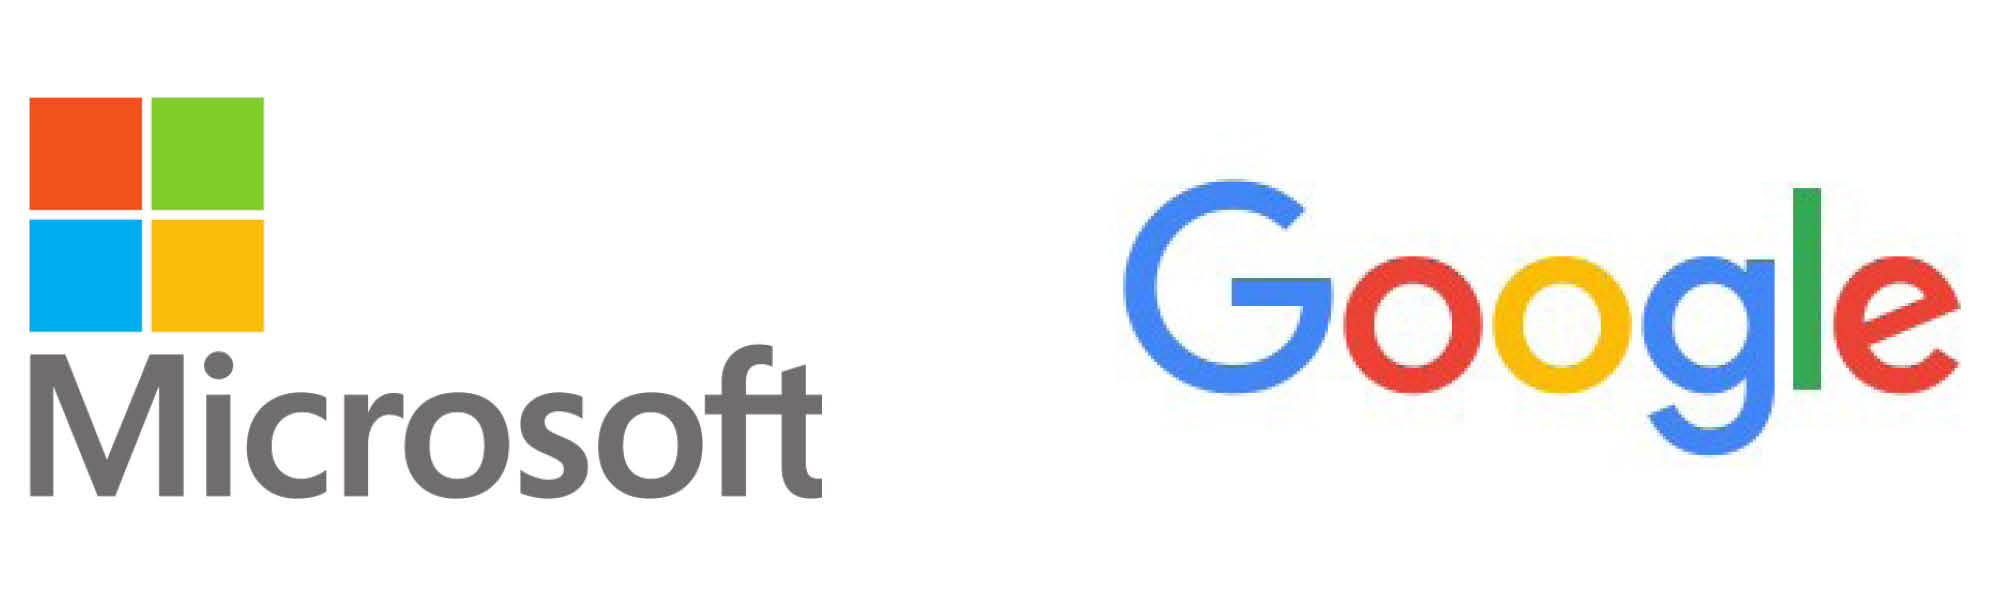 multi colour logo examples of microsoft and google to show examples of where logos have multi colours